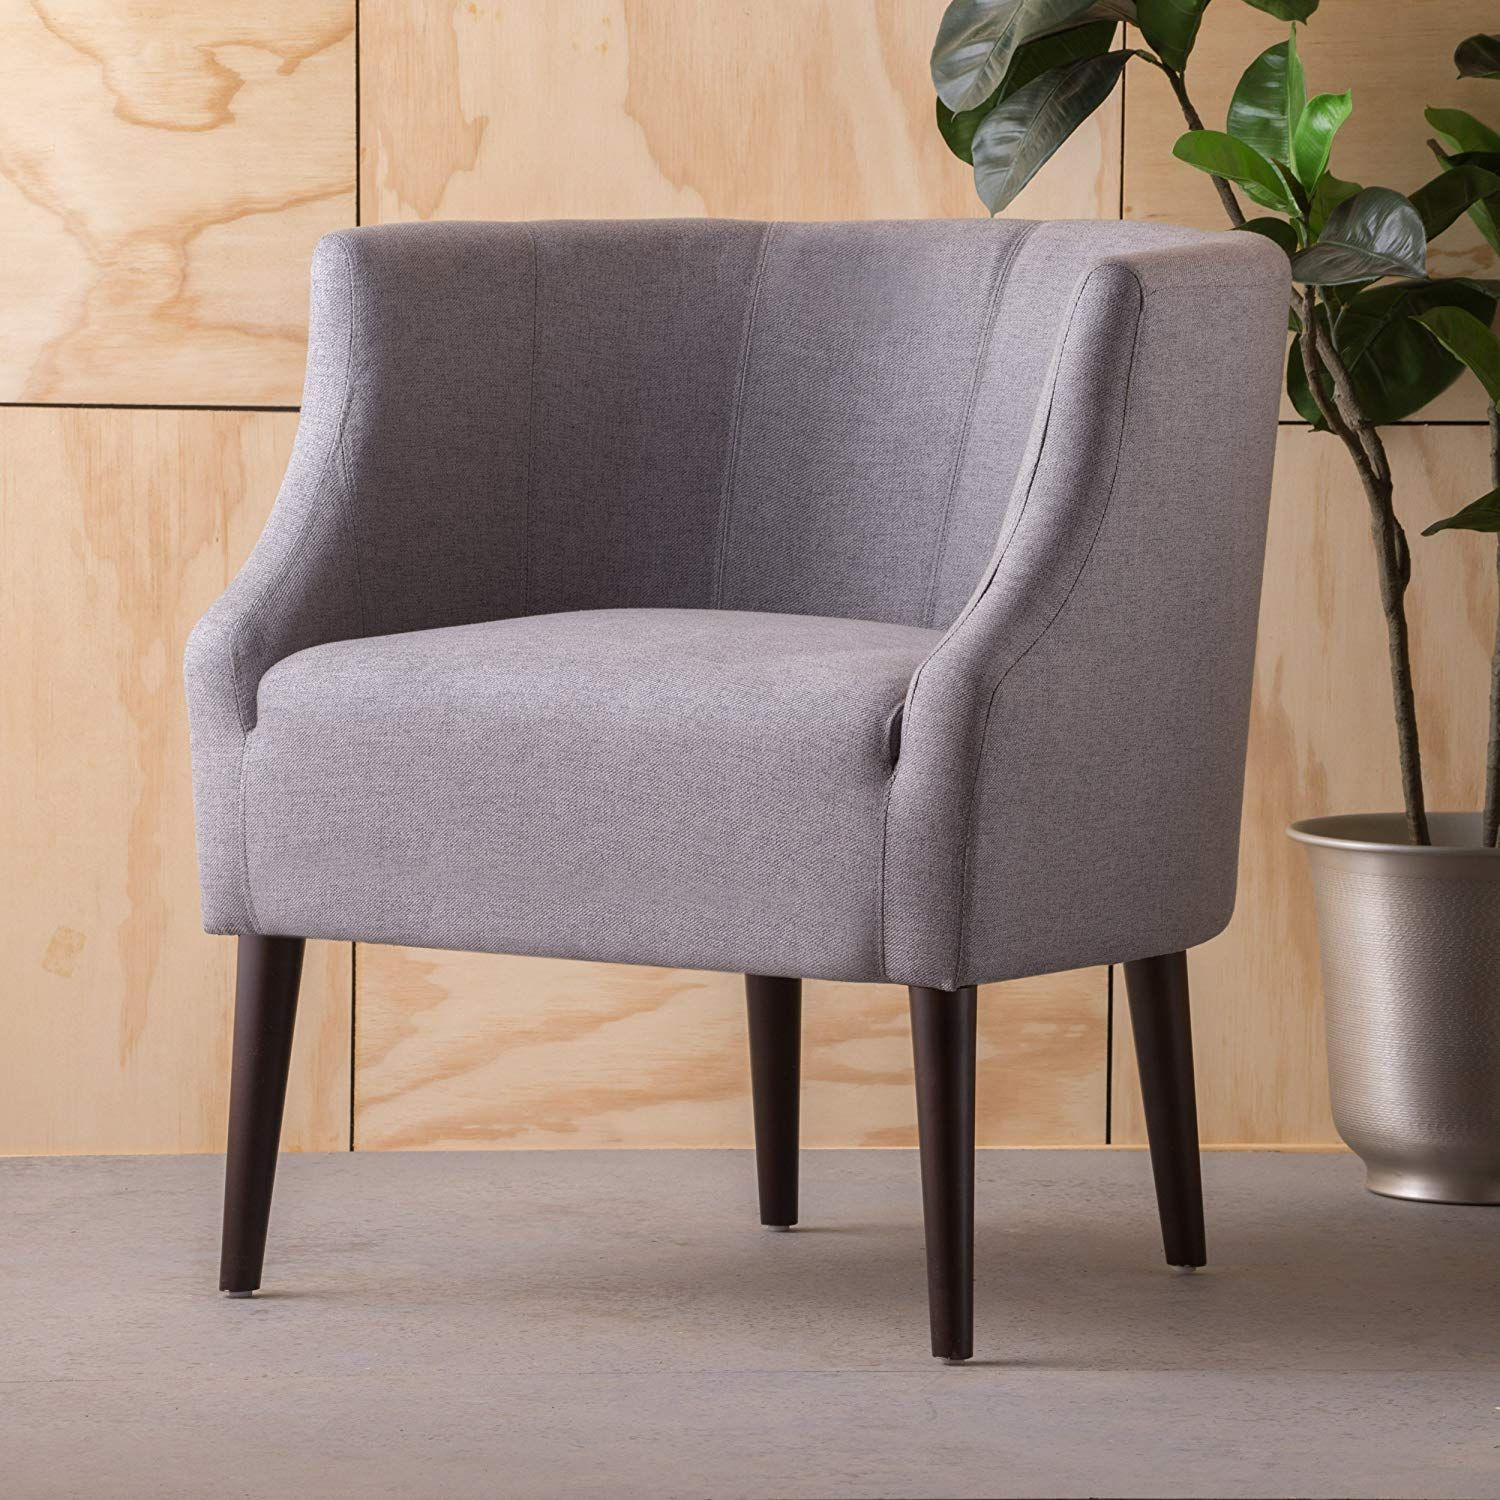 Christopher Knight Home 300285 Sonnet Arm Chair, Grey In With Regard To Hanner Polyester Armchairs (View 7 of 15)